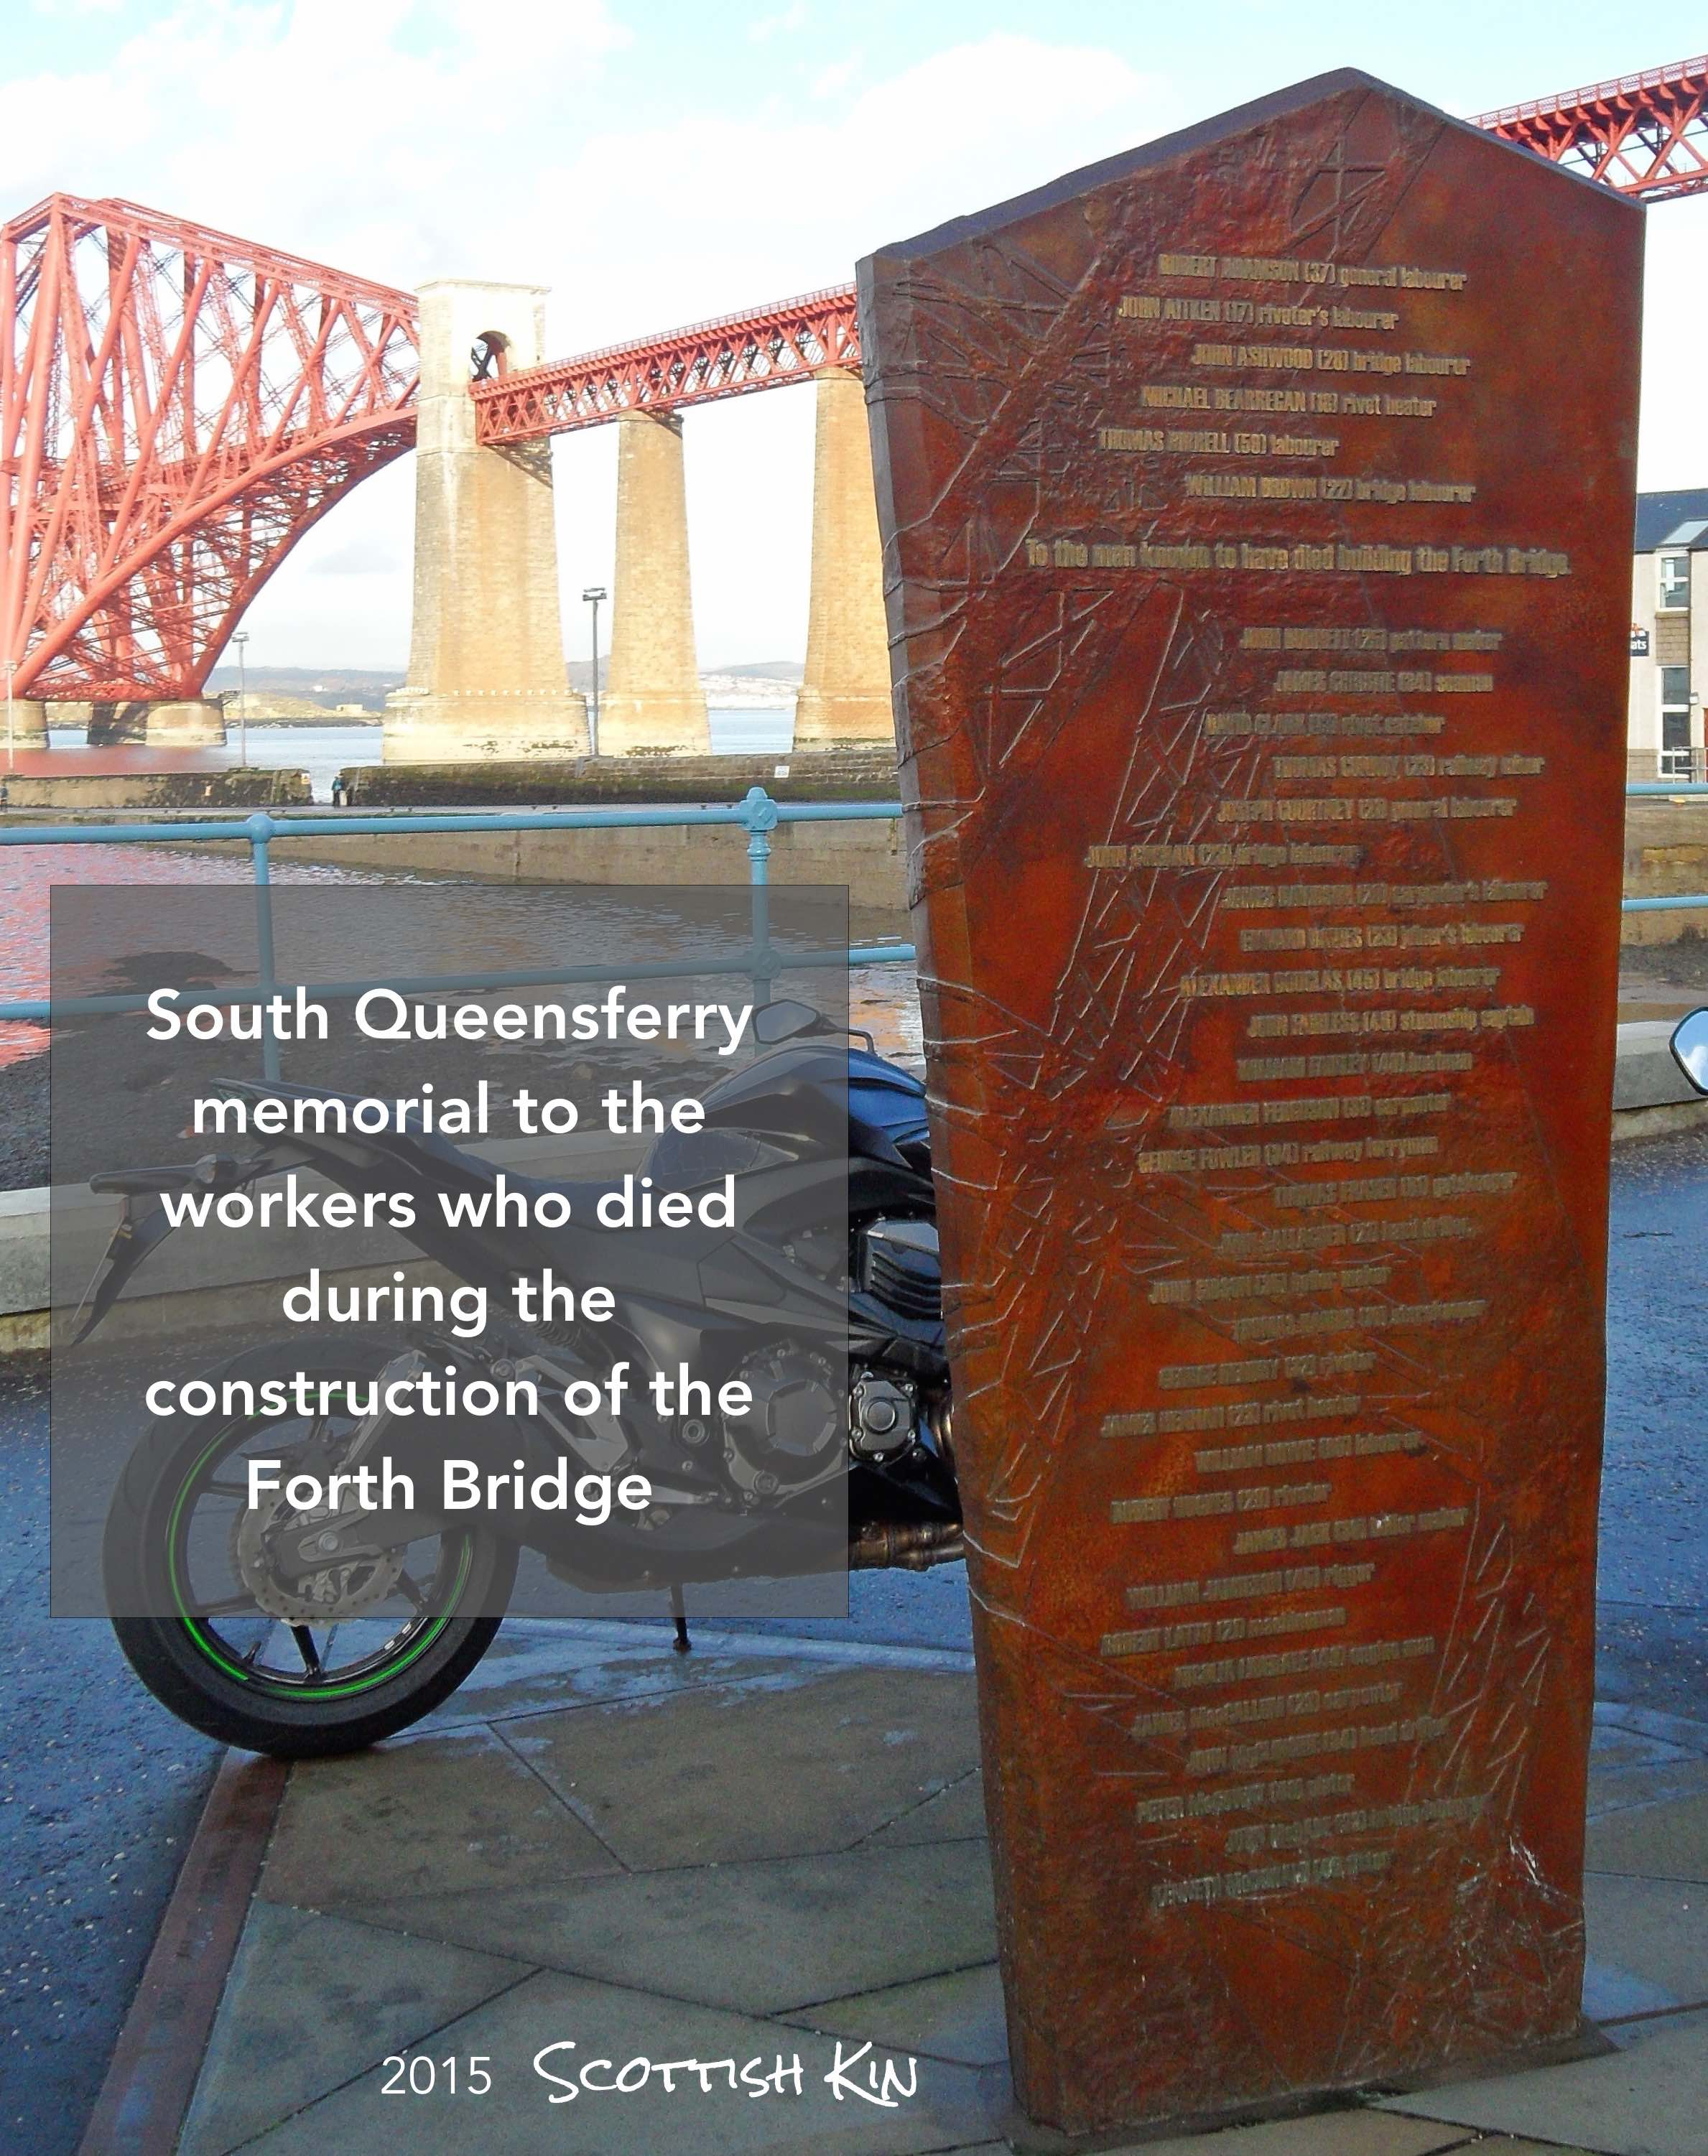 Image of the memorial to the workers who died during the construction of the Bridge